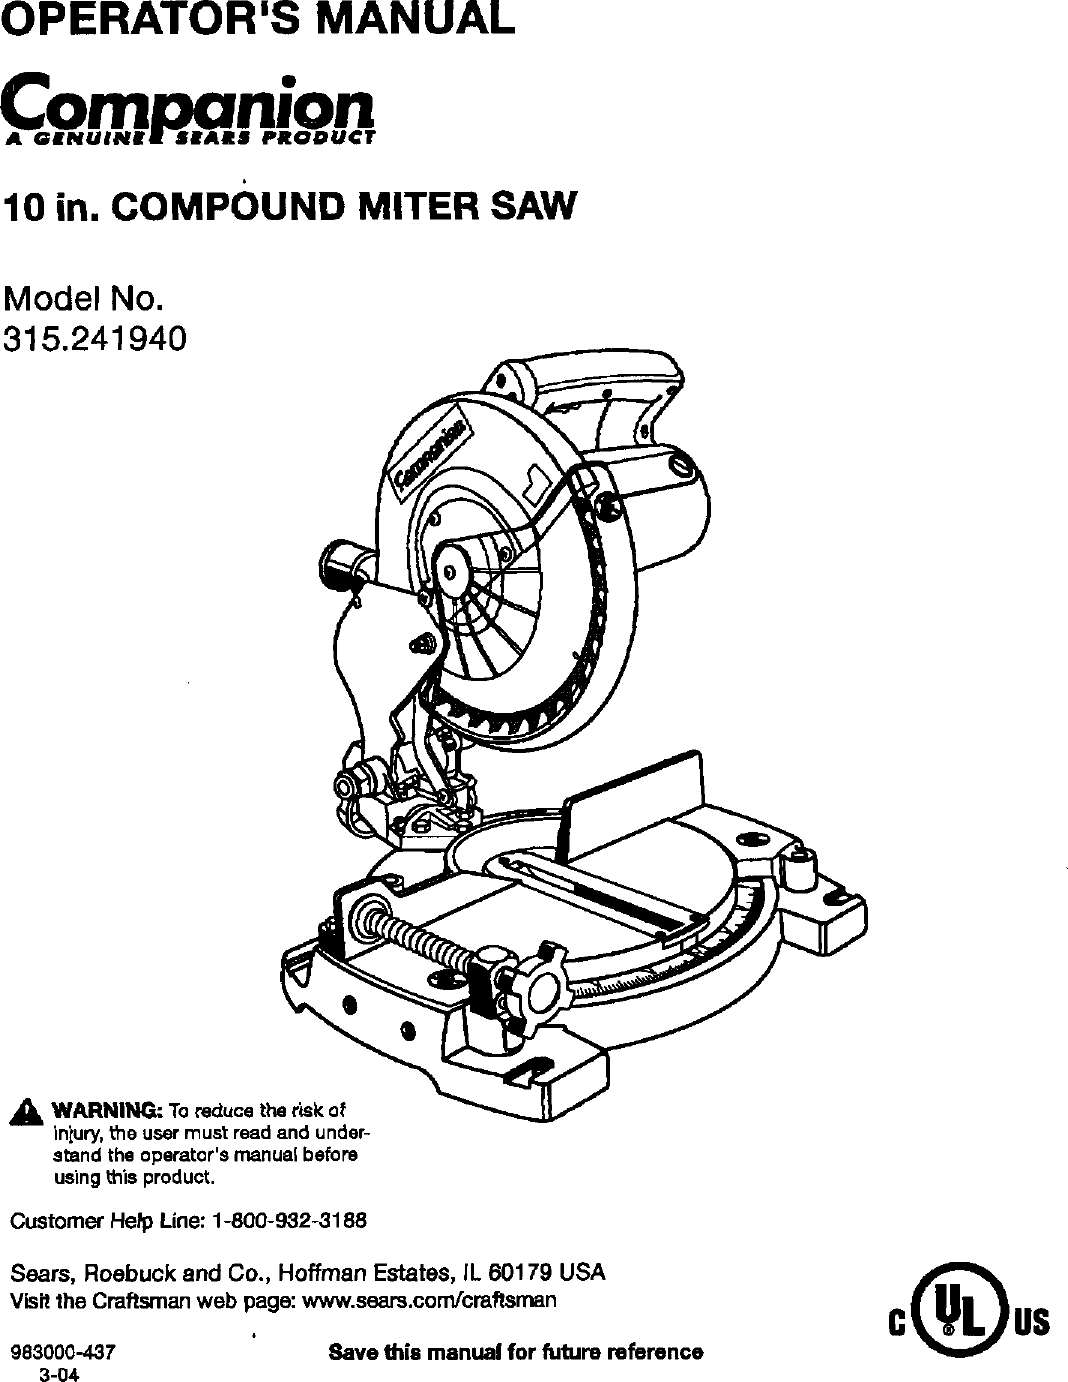 Companion User Manual Miter Saw Manuals And